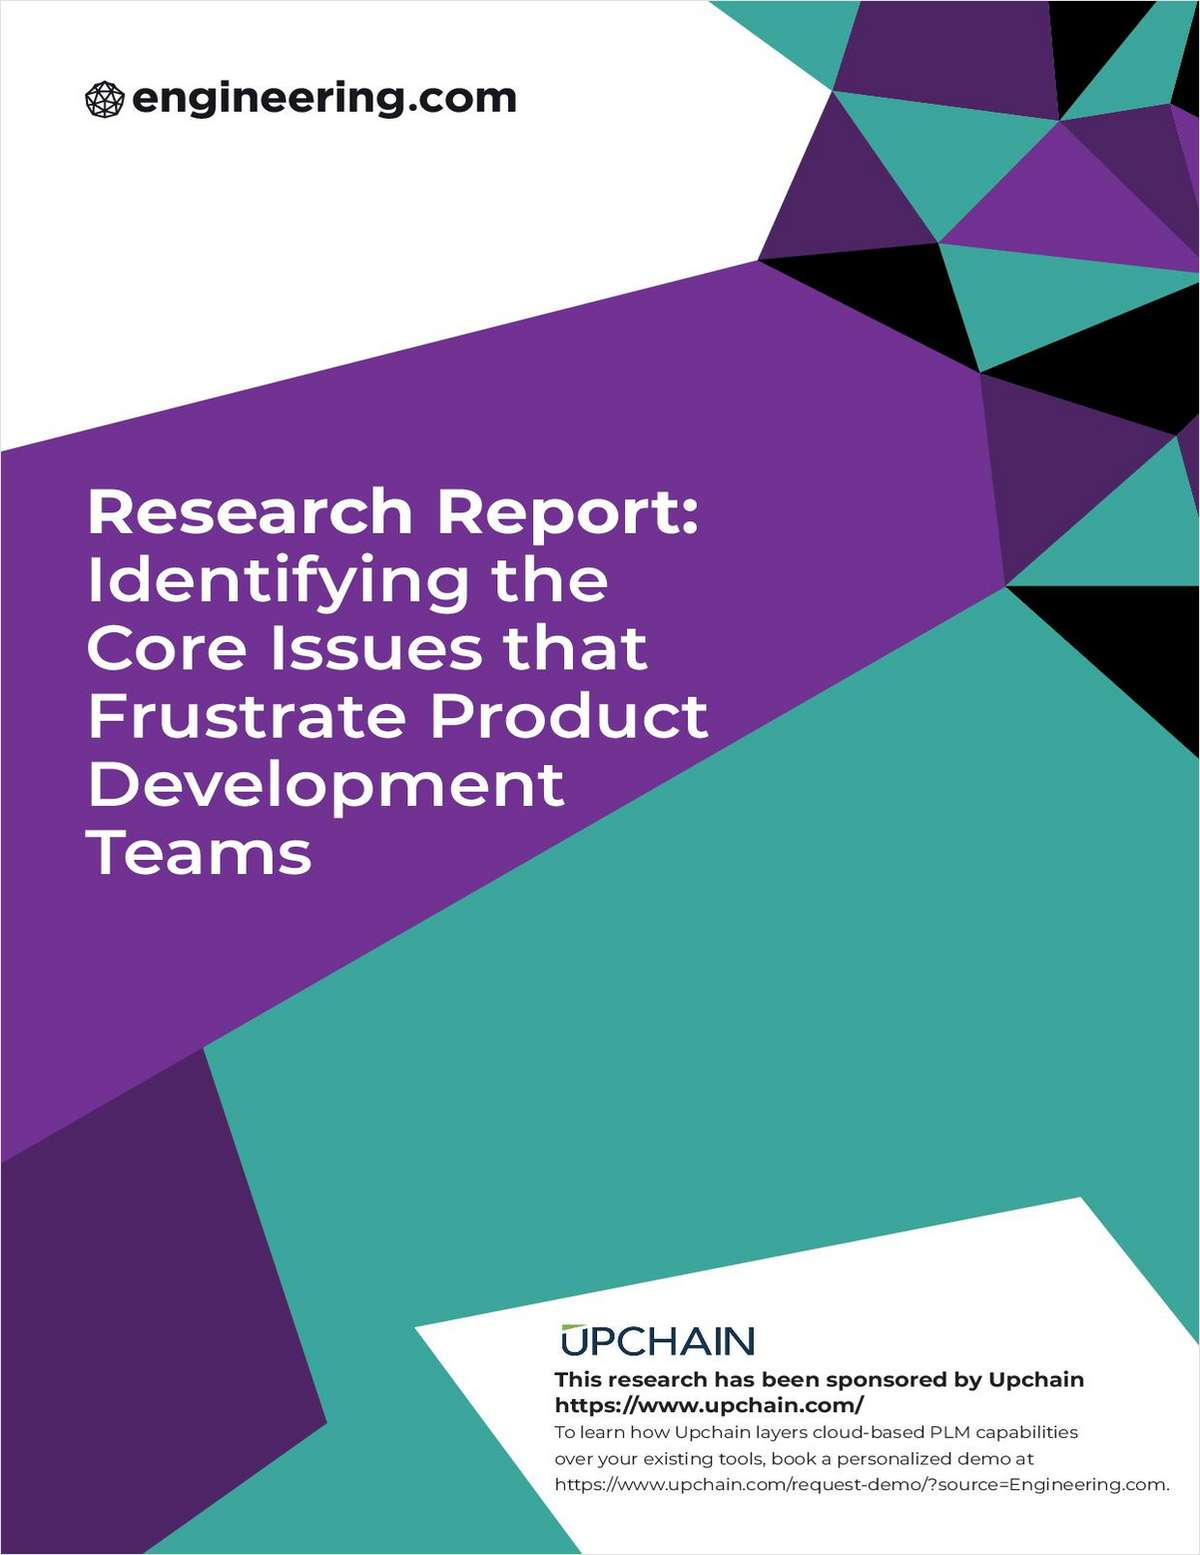 The Core Issues that Frustrate Product Development Teams